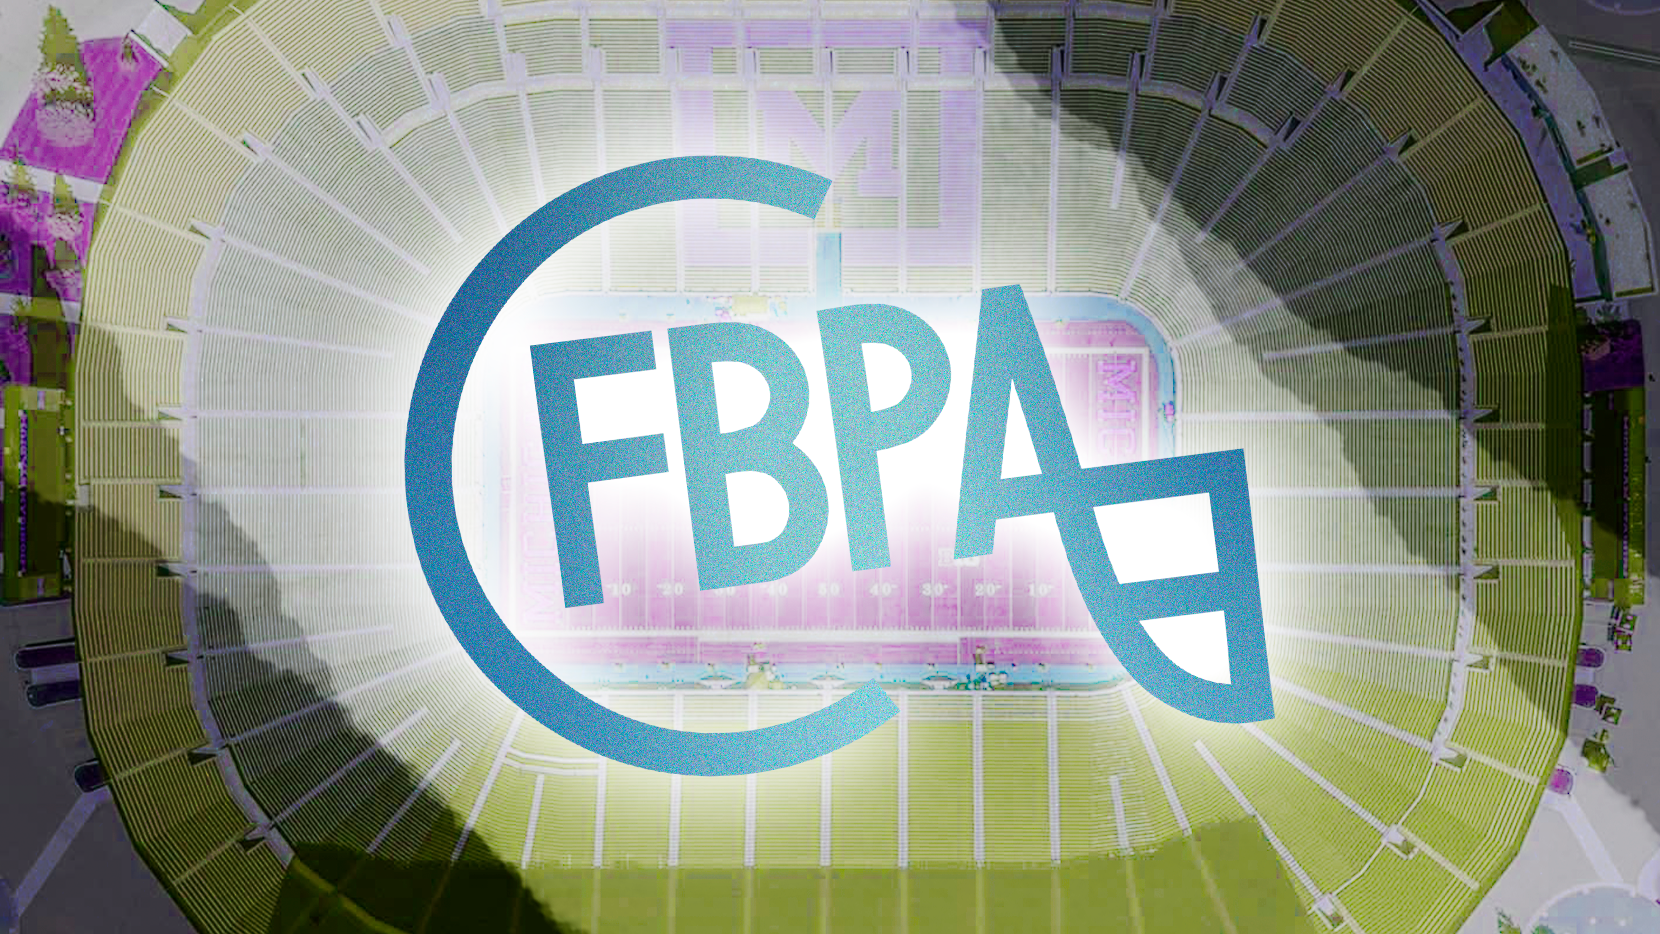 CFBPA: New College Football Players Association to Represent Student-Athletes